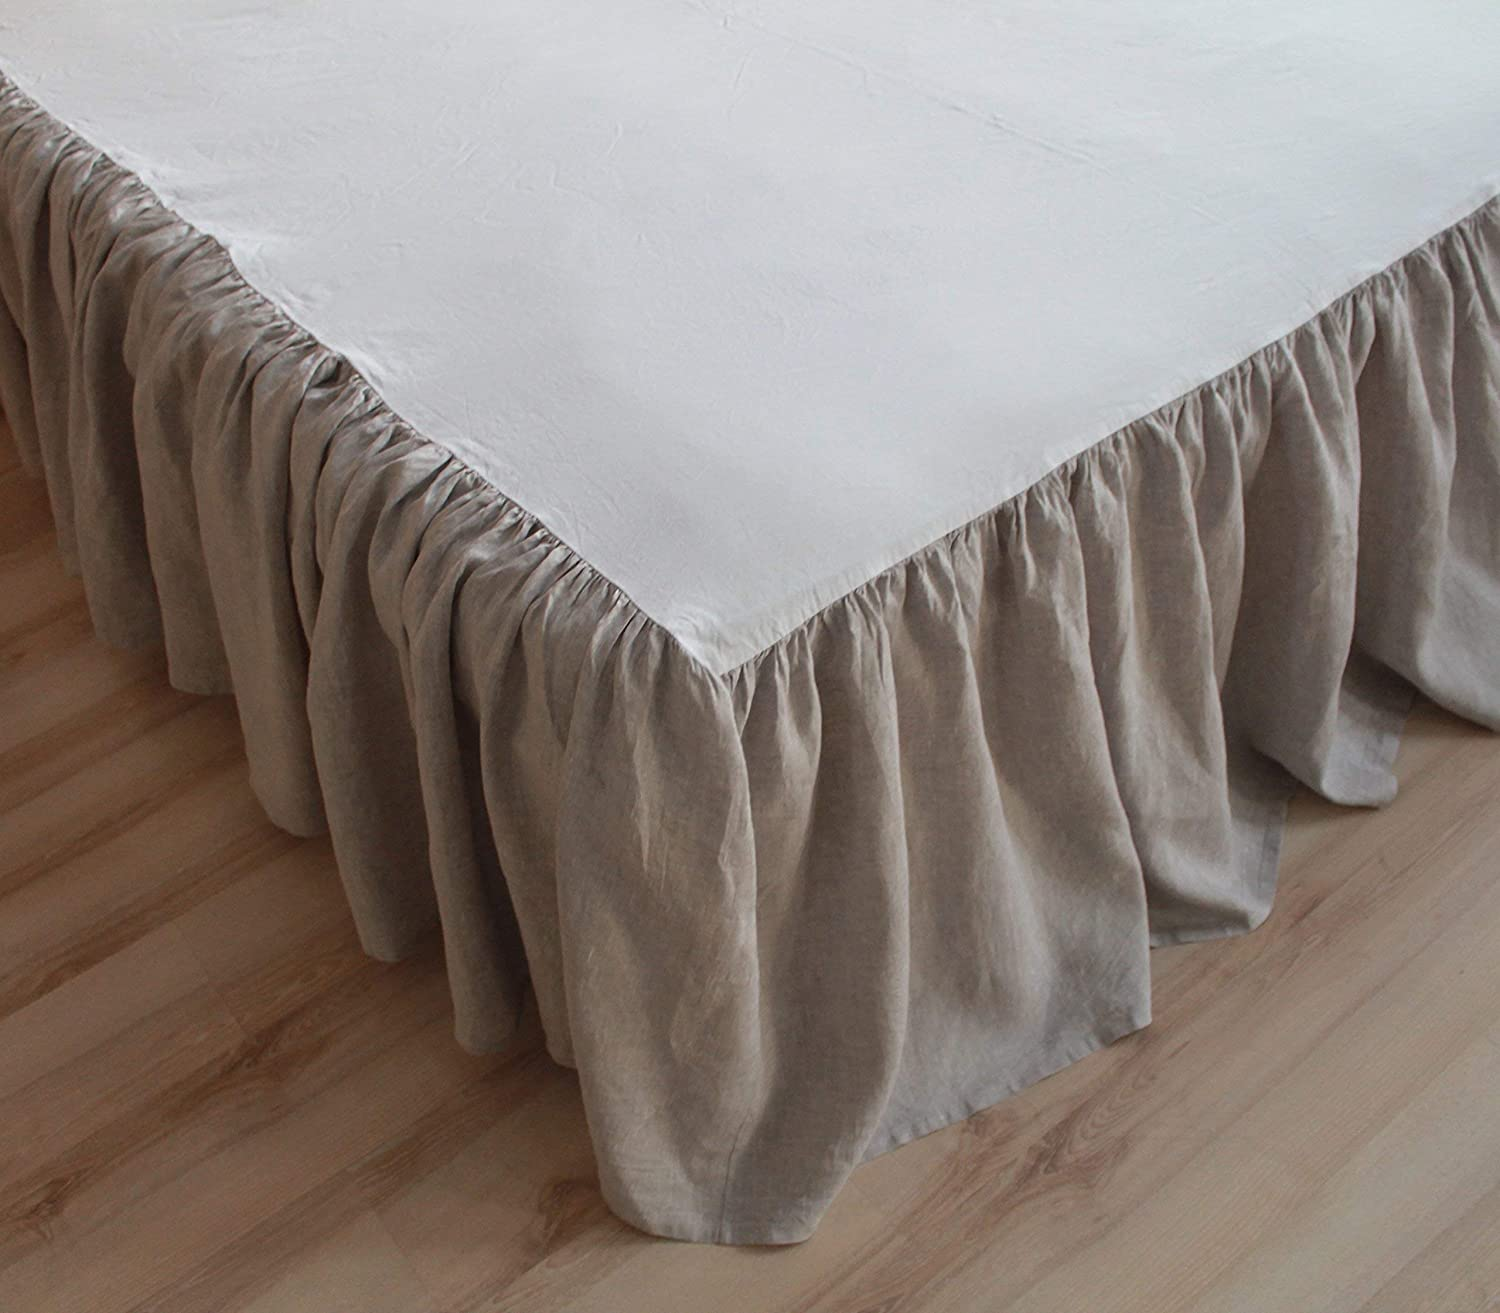 Linen Bed Skirt with Gathered Ruffles and Cotton Decking - Natural Linen Oatmeal, White or Grey Colors